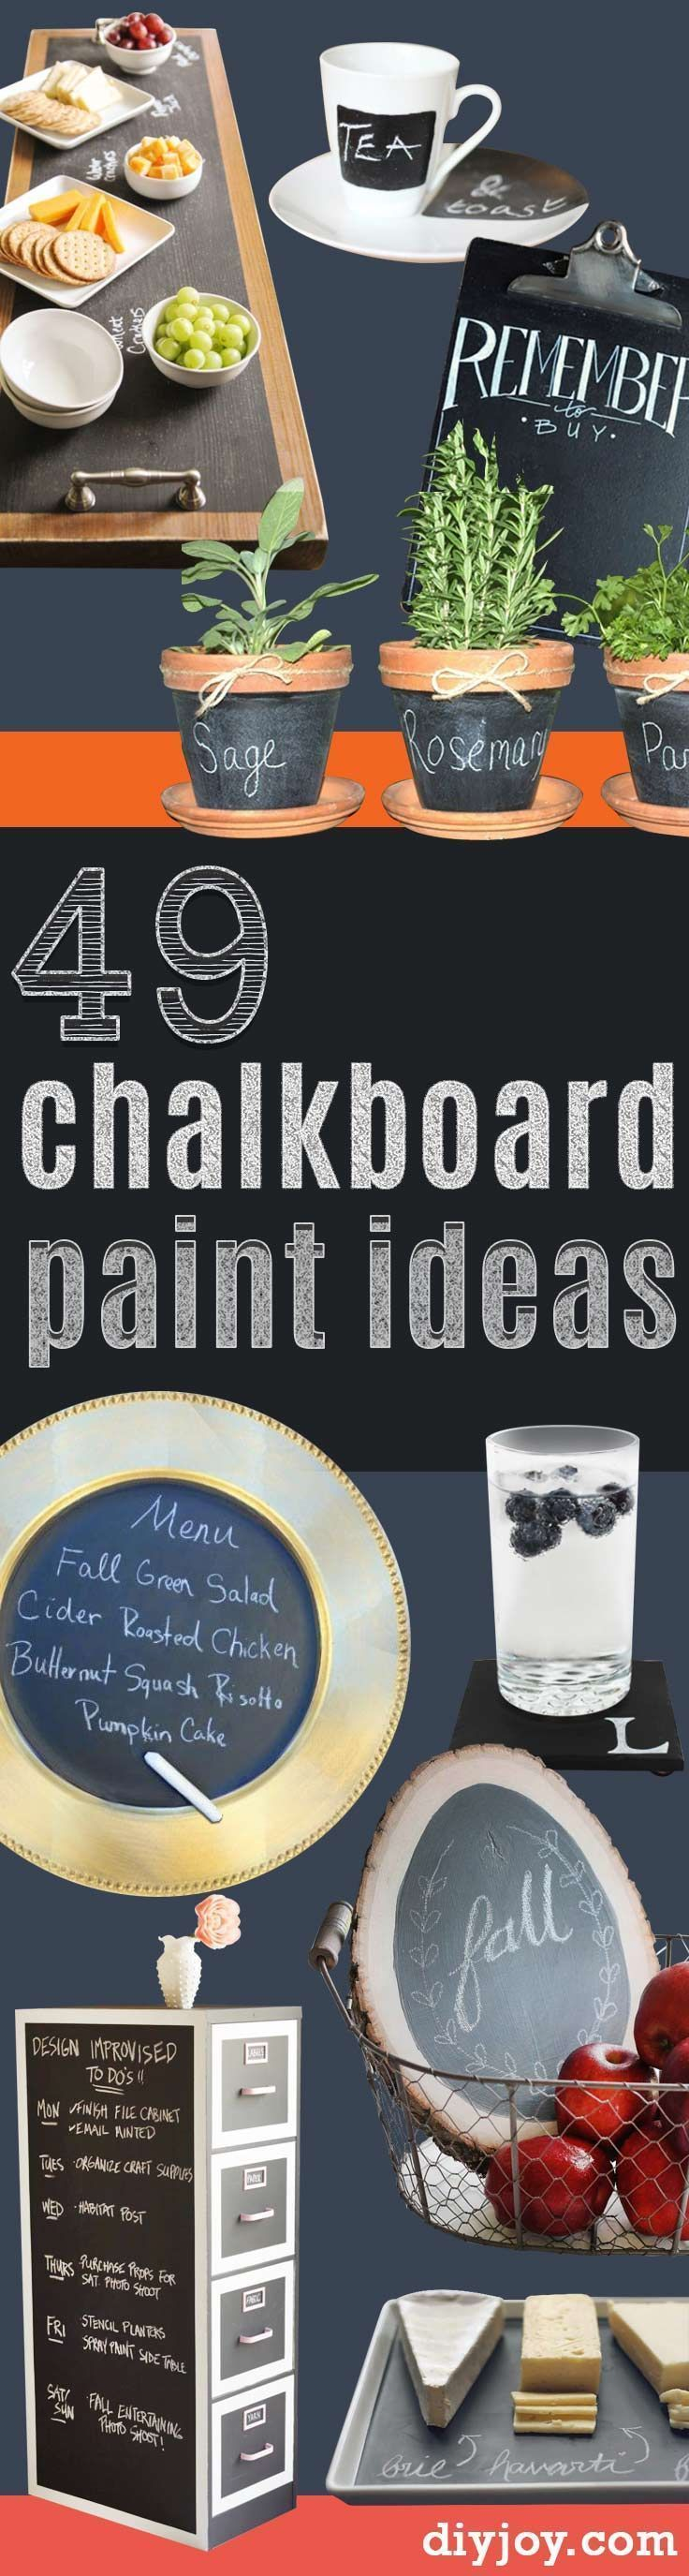 52 diy chalkboard paint ideas for furniture and decor